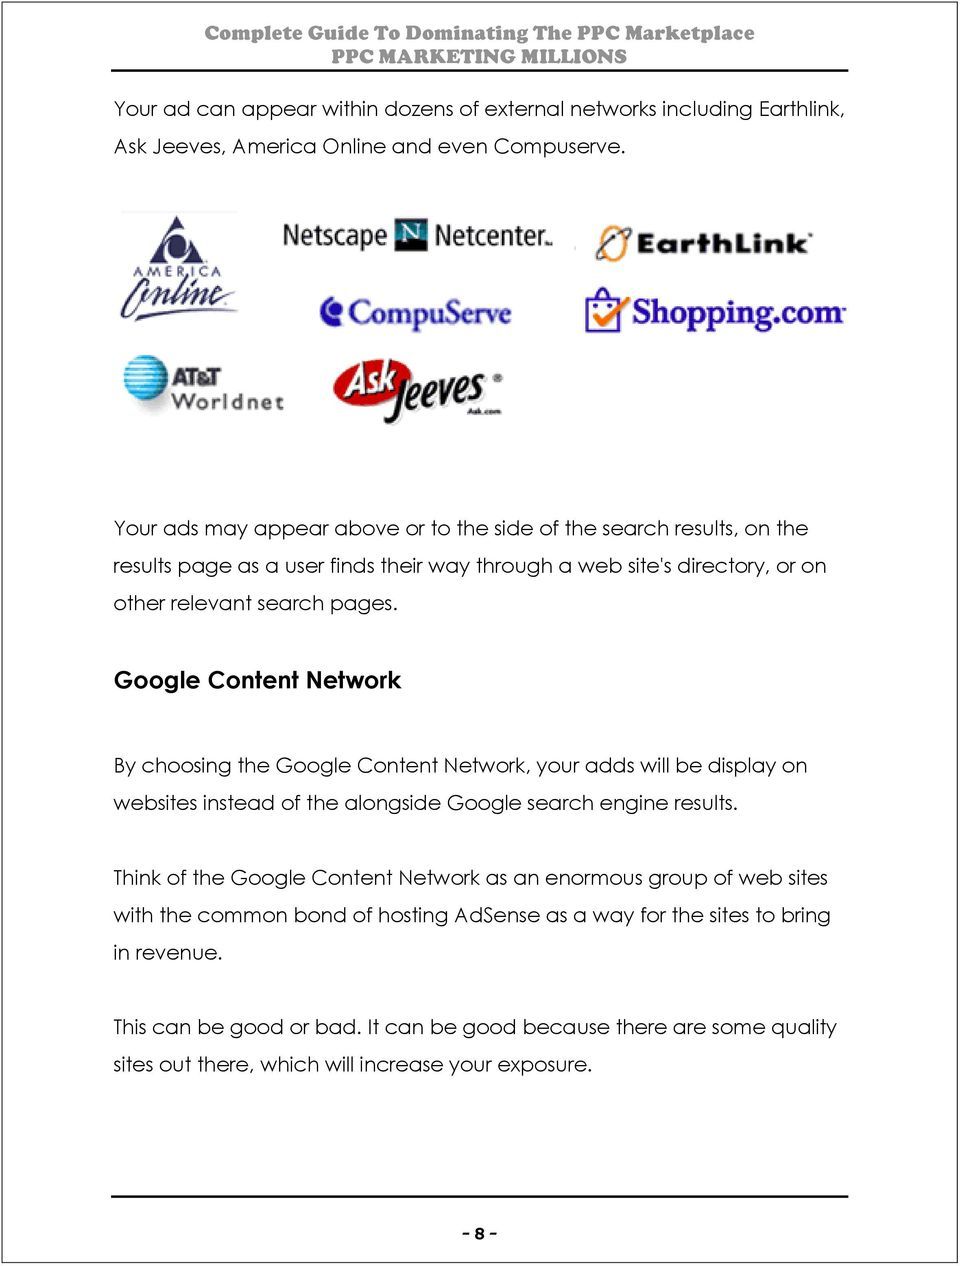 Google Content Network By choosing the Google Content Network, your adds will be display on websites instead of the alongside Google search engine results.